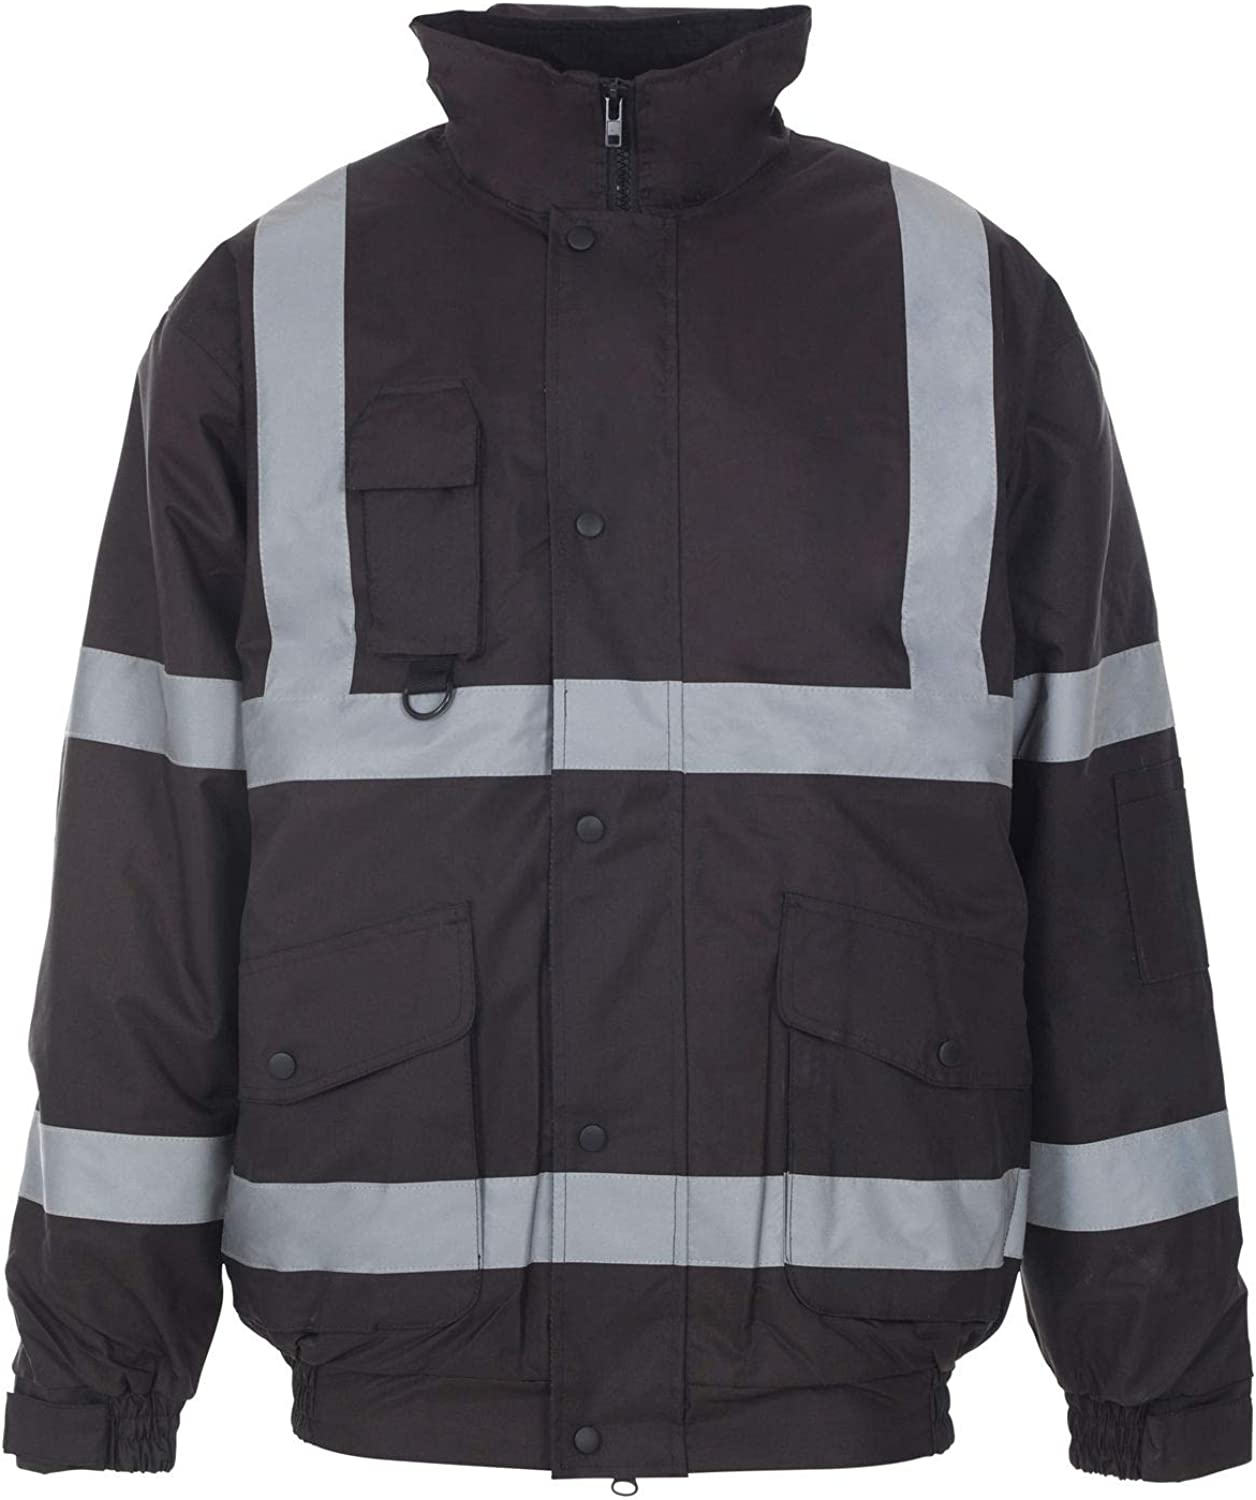 Hi Viz Bomber Jacket Two Tone Reflective Tape Waterproof Quilted Work Jacket Coat High Vis Visibility Safety Workwear Security Road Works Concealed Hood Fluorescent Flashing Top Size S-4XL